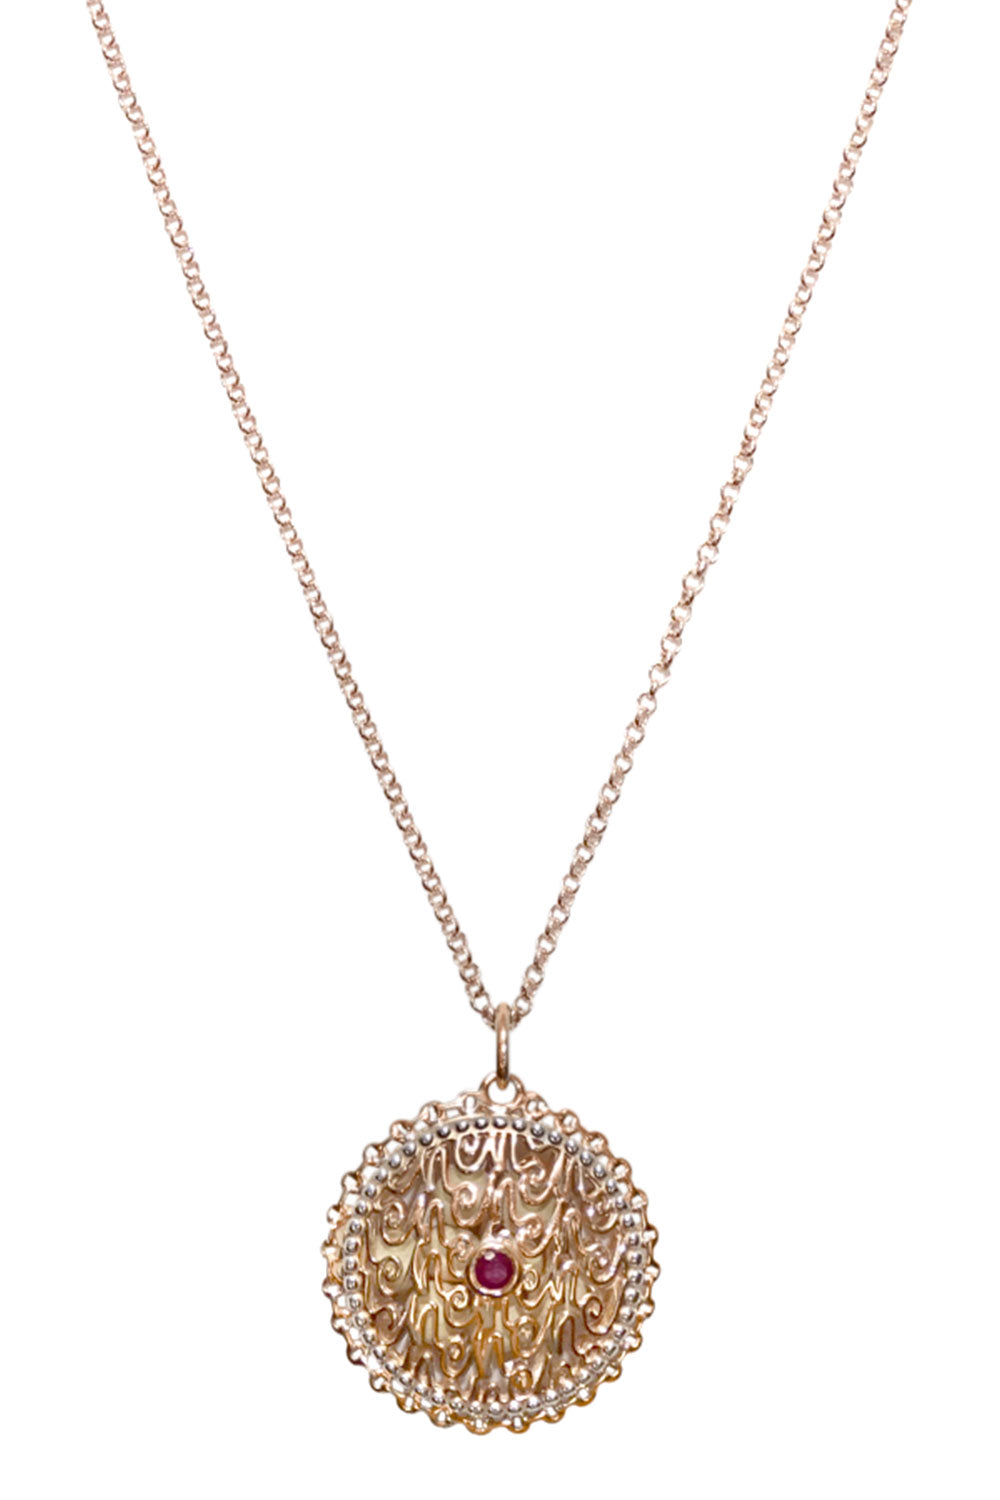 Heirloom Necklace - Rose Gold